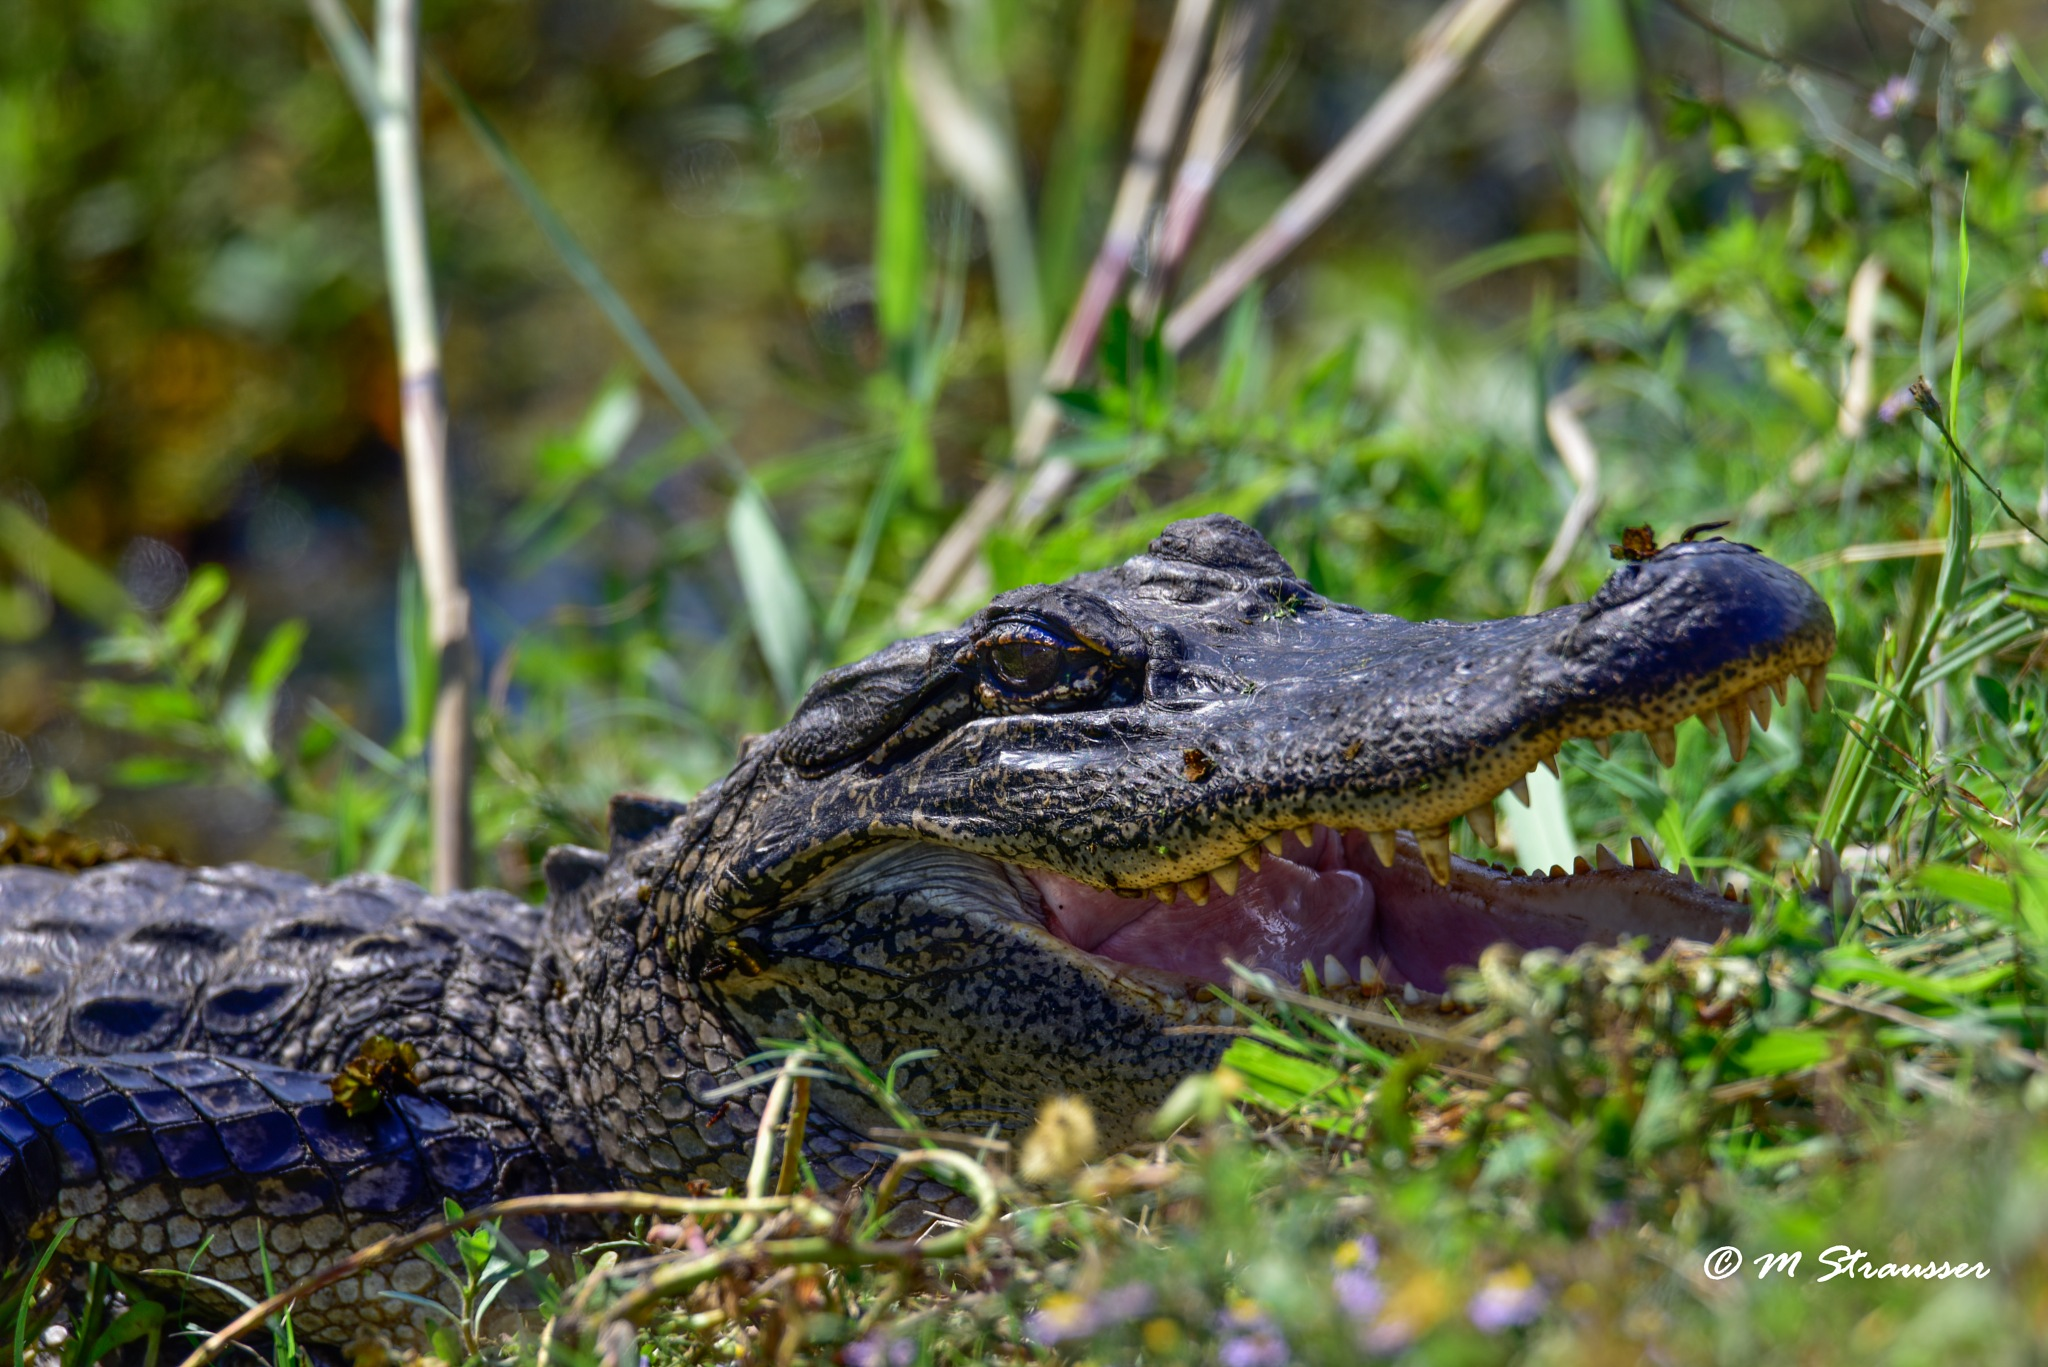 gator by MStrausser of the iMage Shack